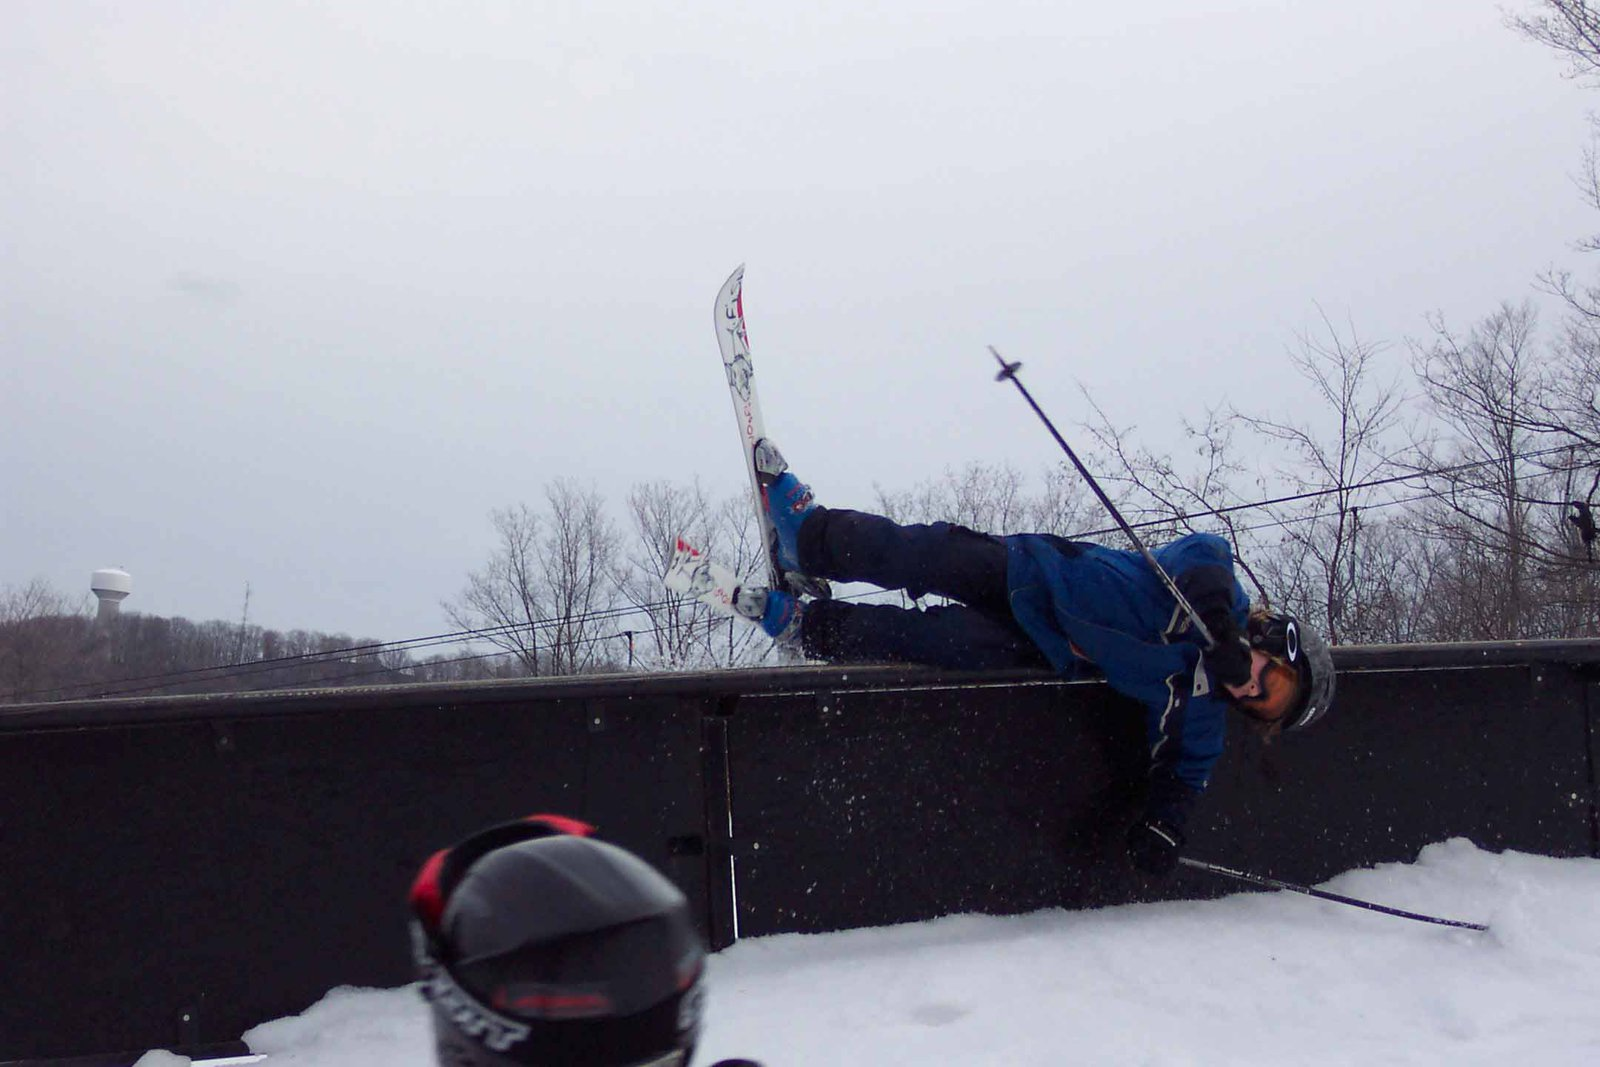 How Not to Ride a Rail